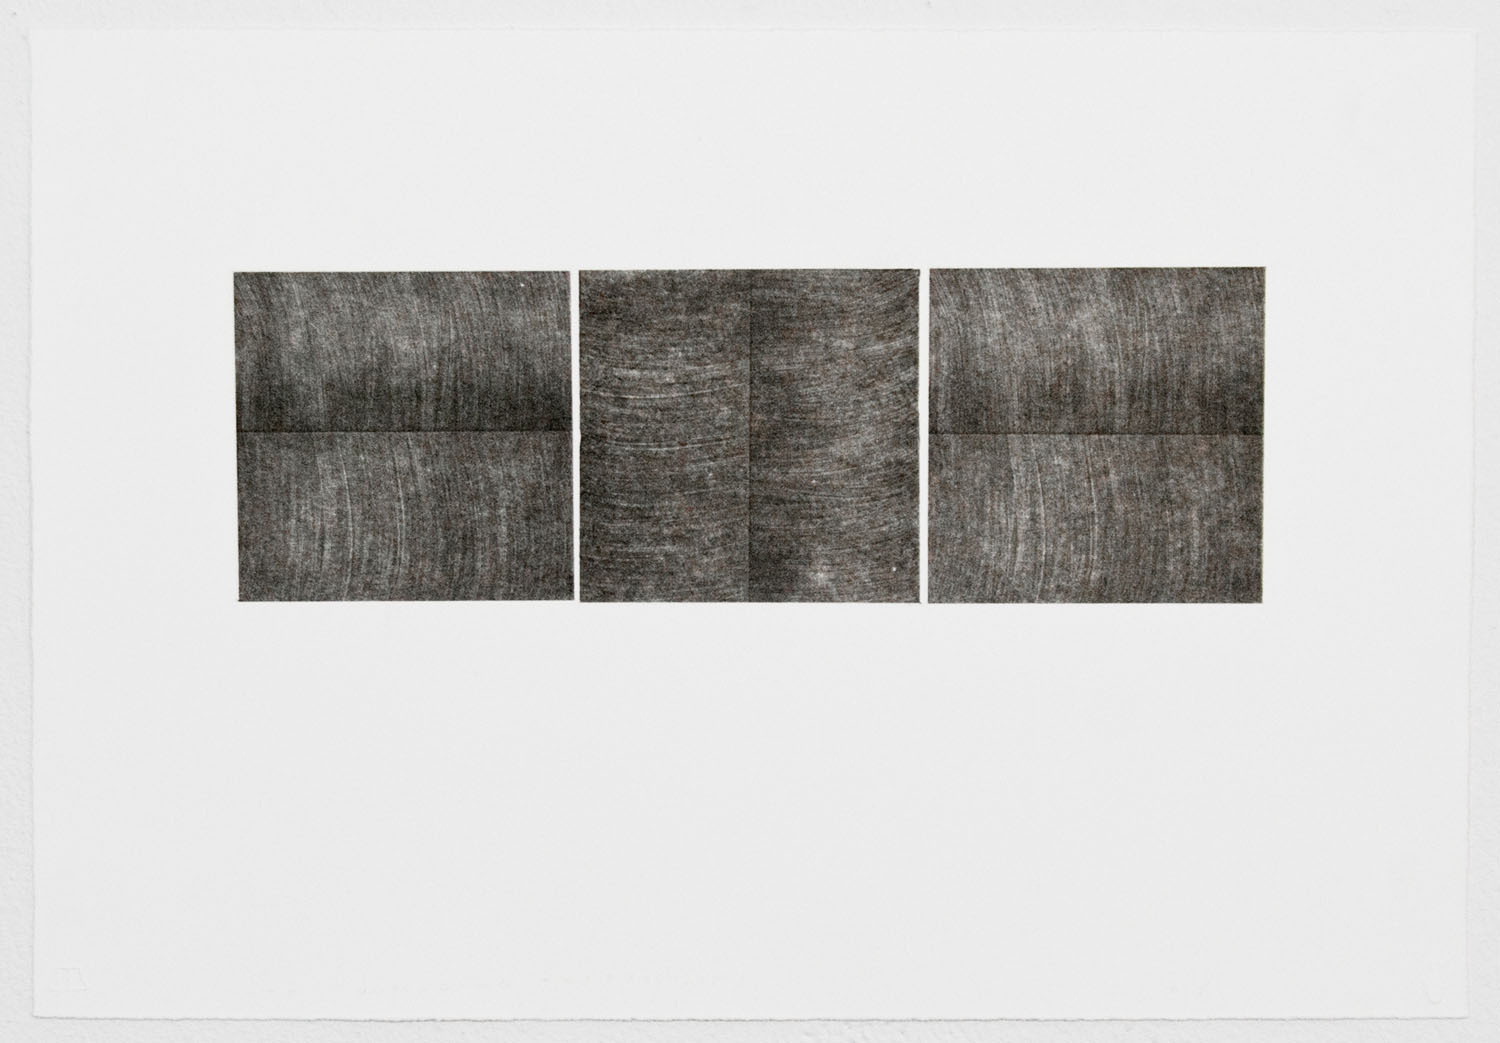 """Unfolding Triptych No. 1, Edition of 15, 2015  Single-color lithograph with chine colle, 10.94"""" x 15.81"""" (paper size)  Collaborating Printer: Valpuri Remling @ Tamarind Institute"""